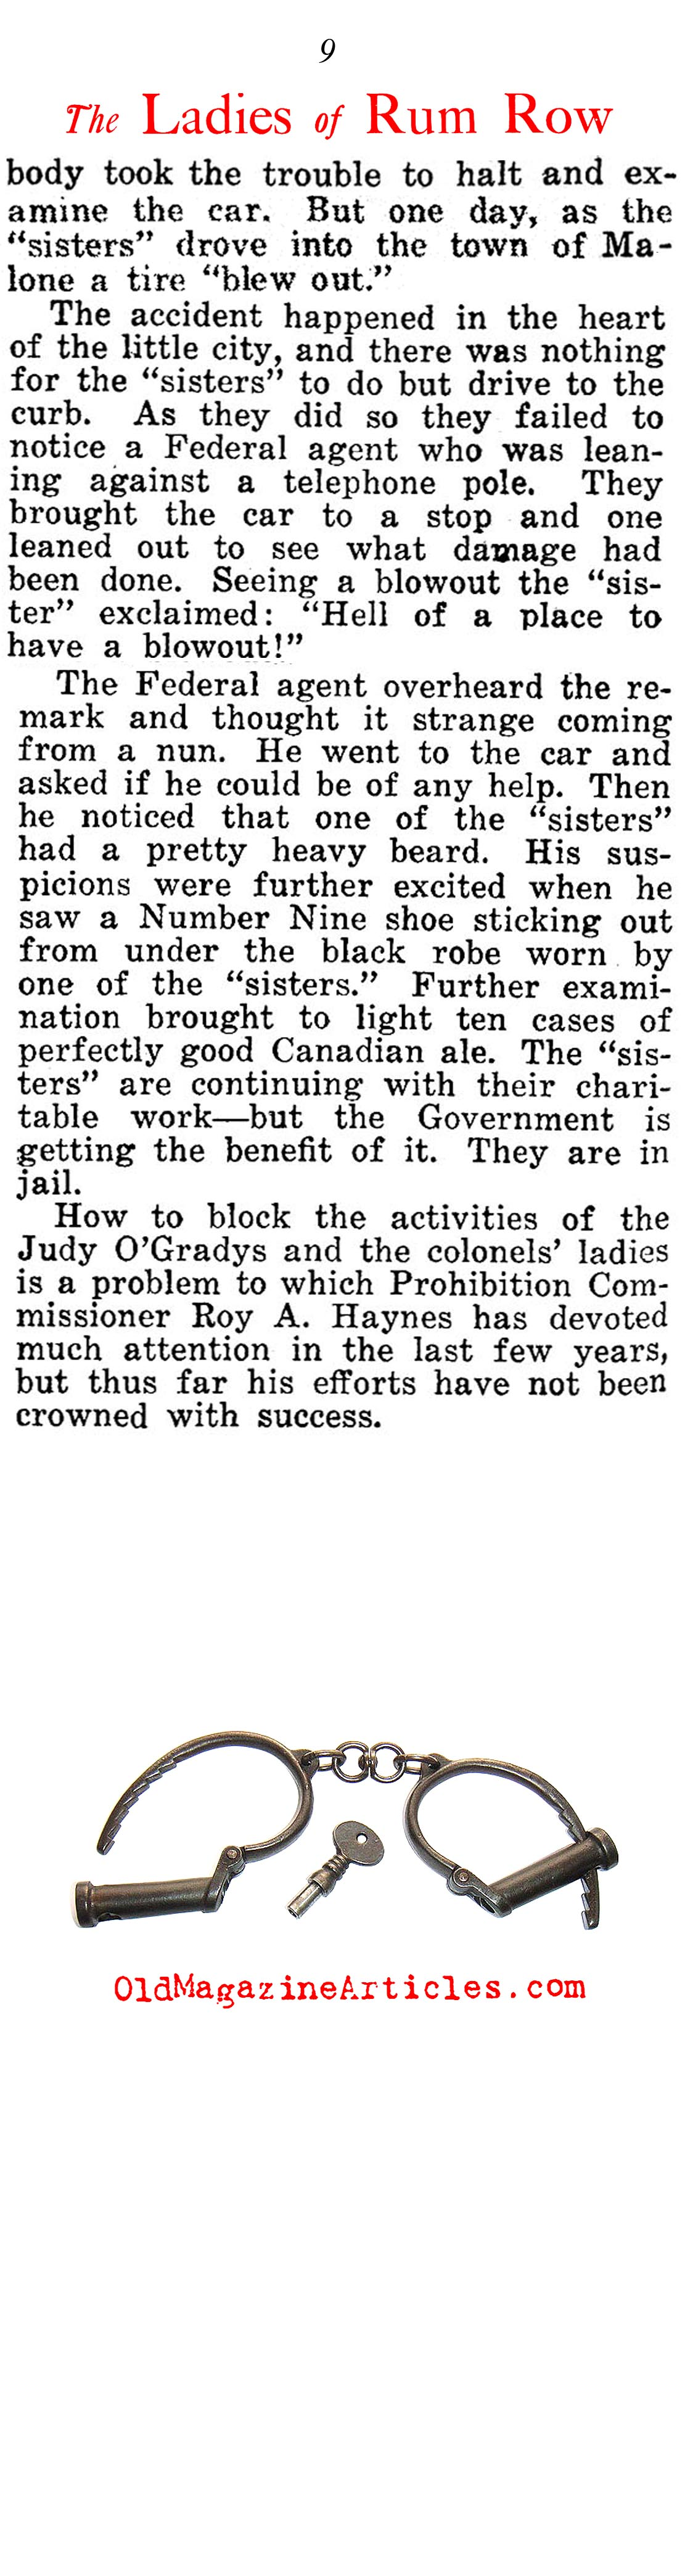 Prohibition Era Prisons Filled with Women (American Legion Weekly, 1924)